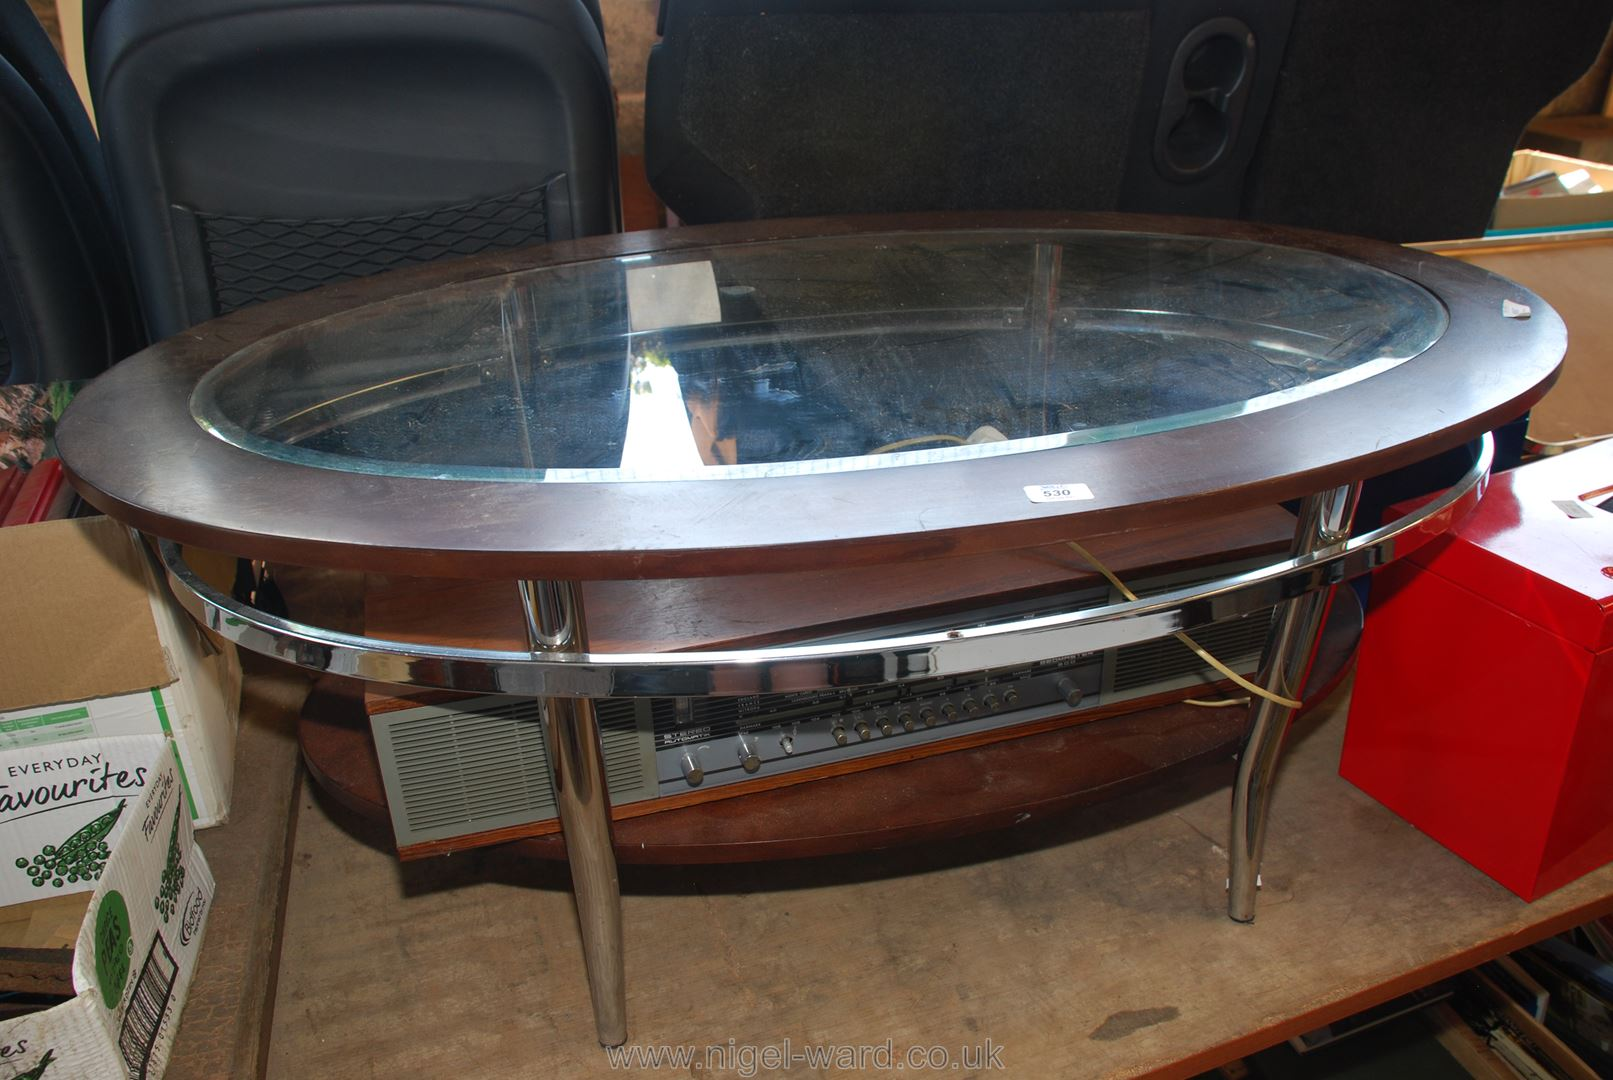 An oval glass topped coffee table.